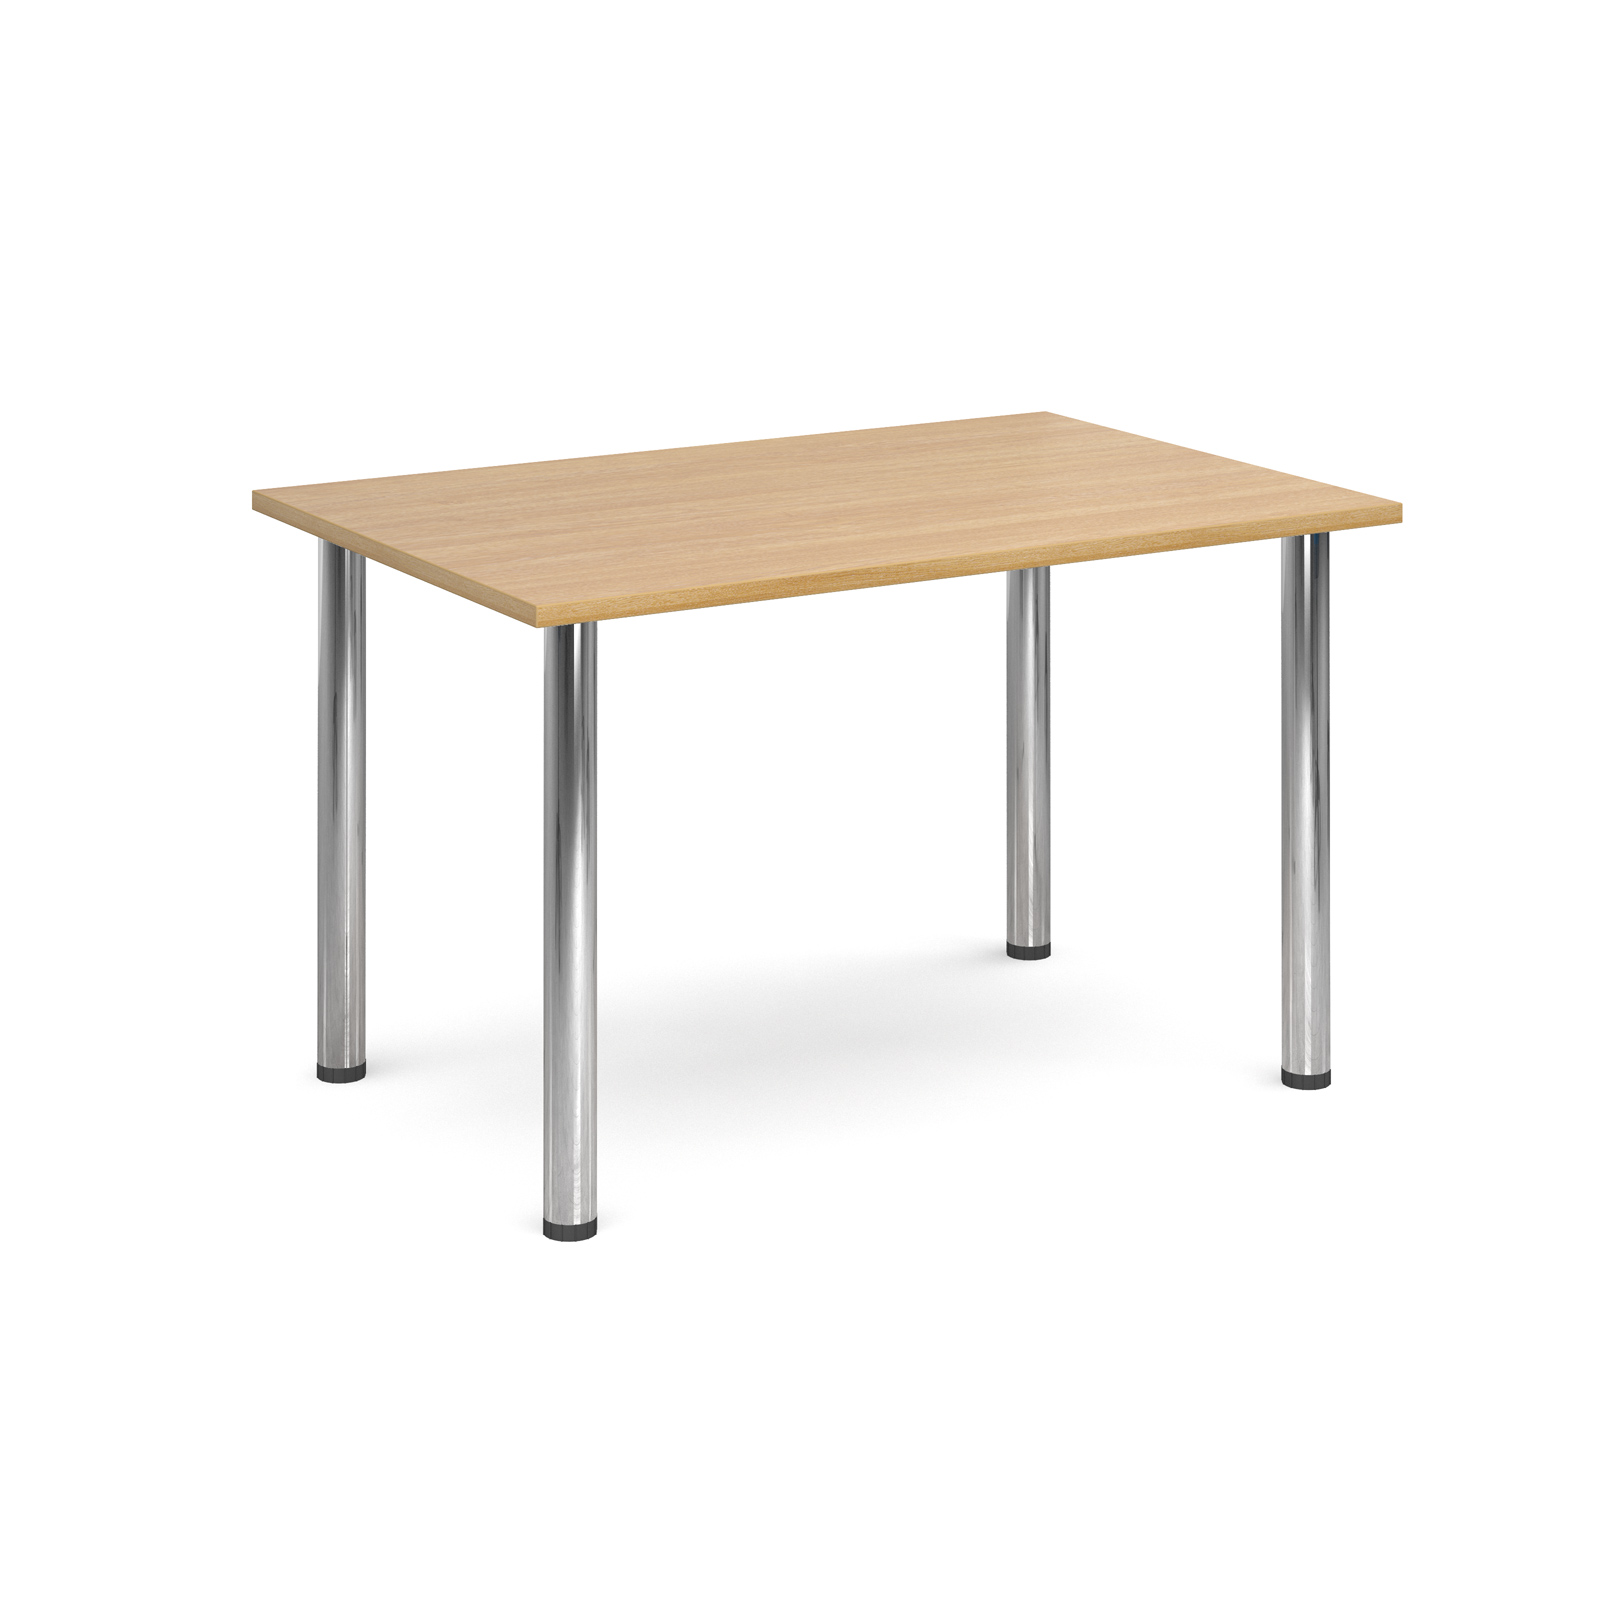 Rectangular deluxe chrome radial leg table 1300mm x 800mm - oak